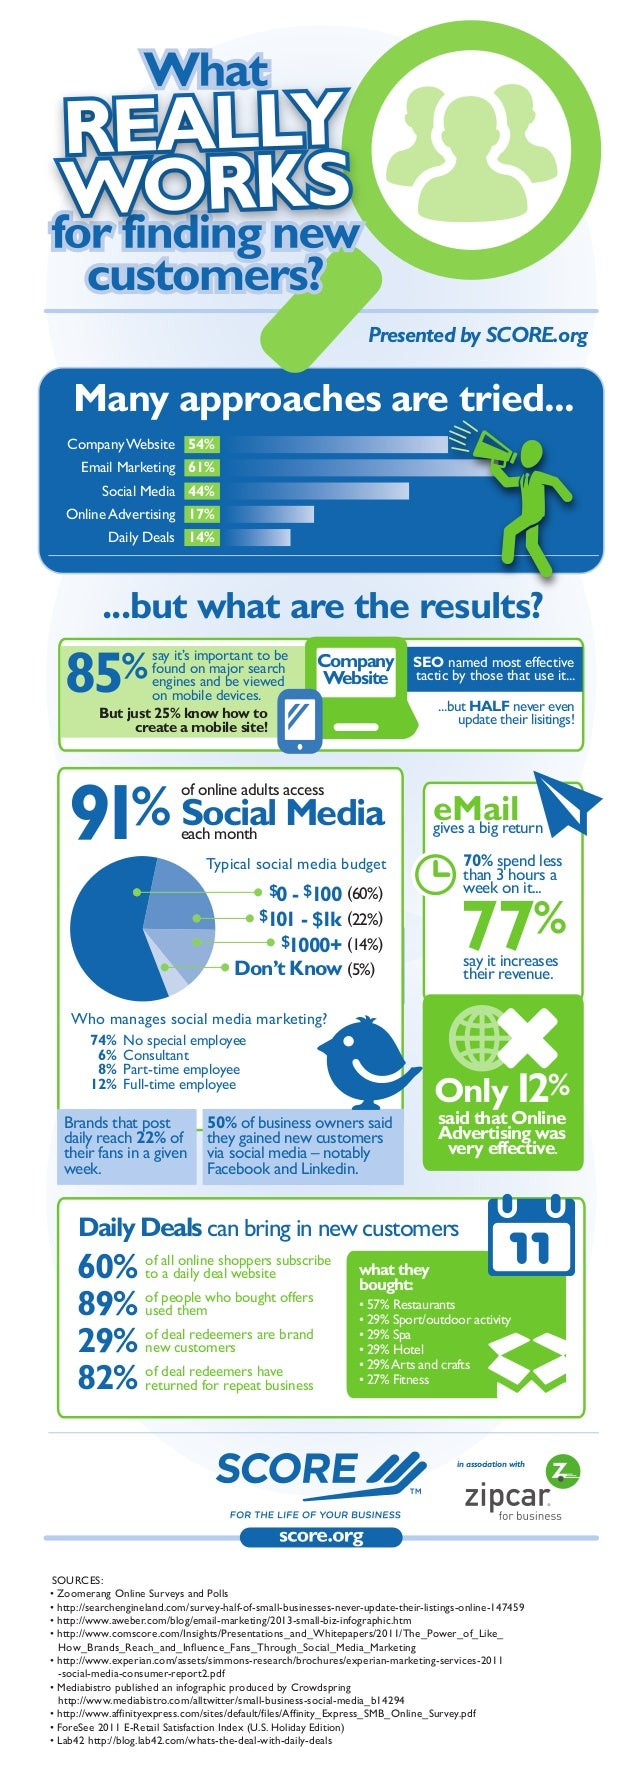 Presented by SCORE.org  Many approaches are tried... Company Website 54% Email Marketing 61% Social Media 44% Online Adver...